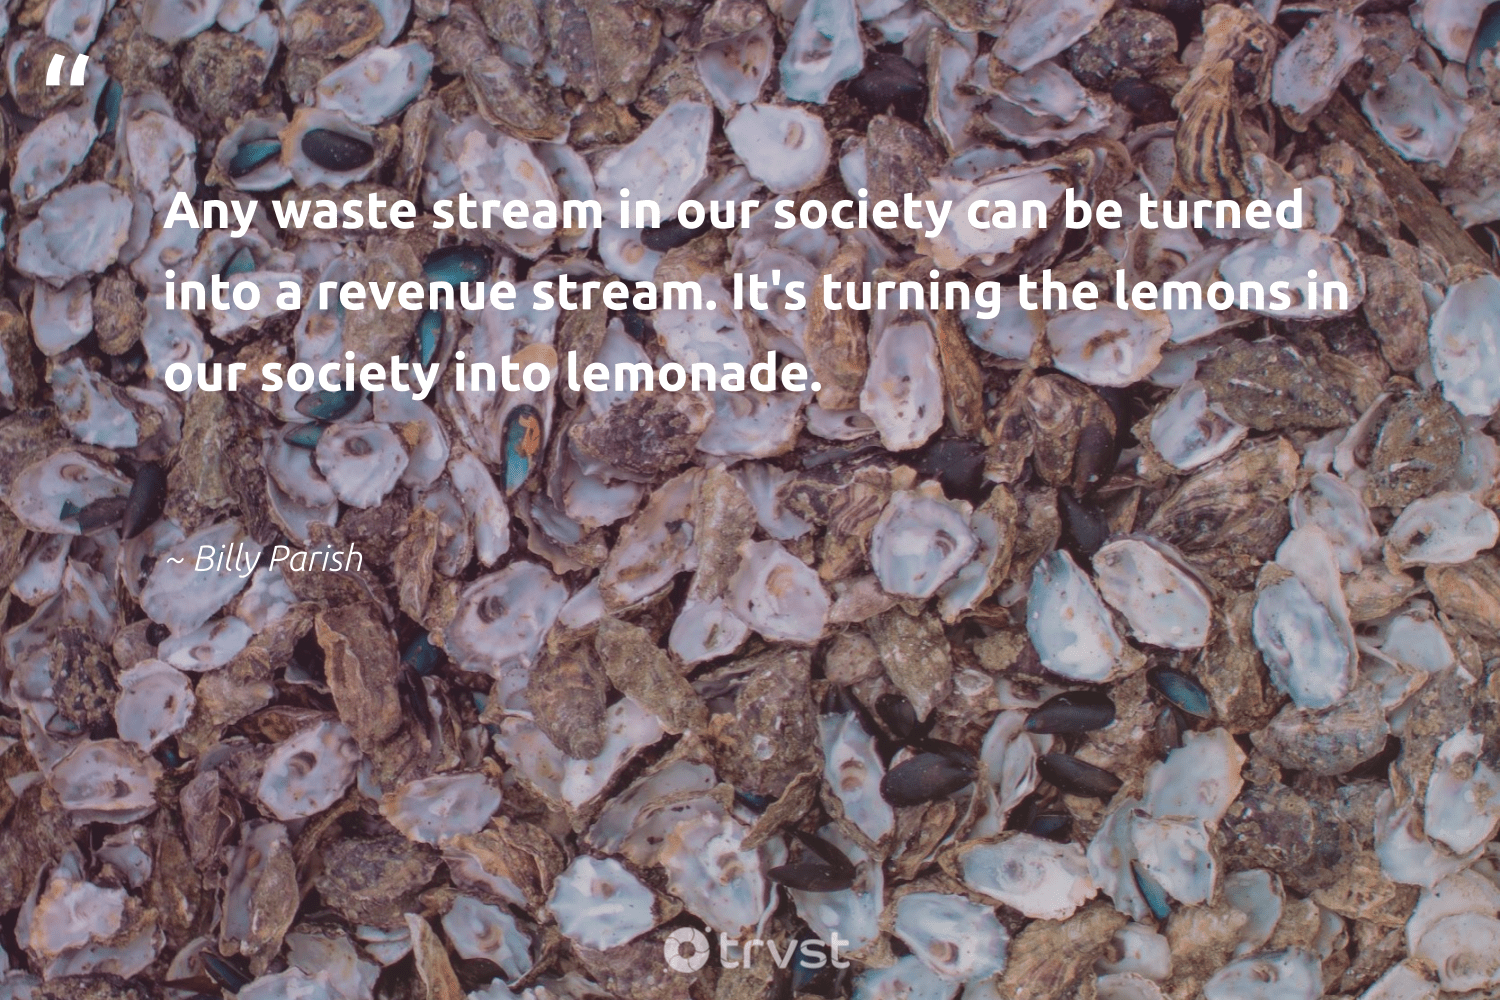 """""""Any waste stream in our society can be turned into a revenue stream. It's turning the lemons in our society into lemonade.""""  - Billy Parish #trvst #quotes #waste #society #thinkgreen #dotherightthing #savetheplanet #bethechange #takeaction #ecoconscious #wasteless #dogood"""